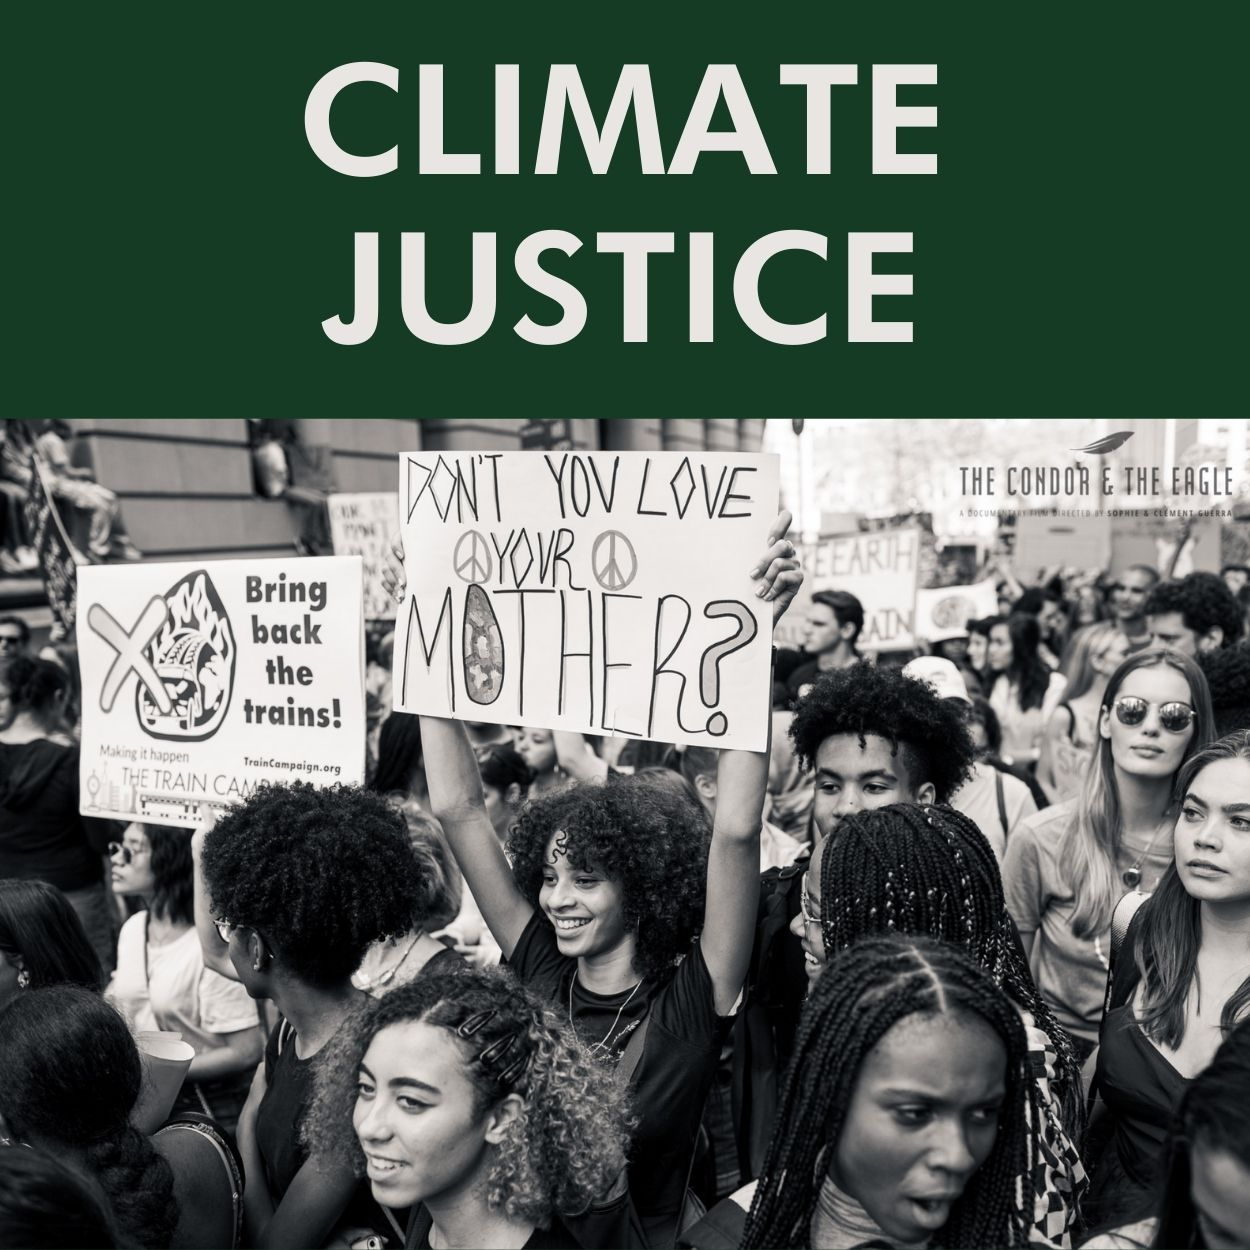 CLIMATE JUSTICE (2)